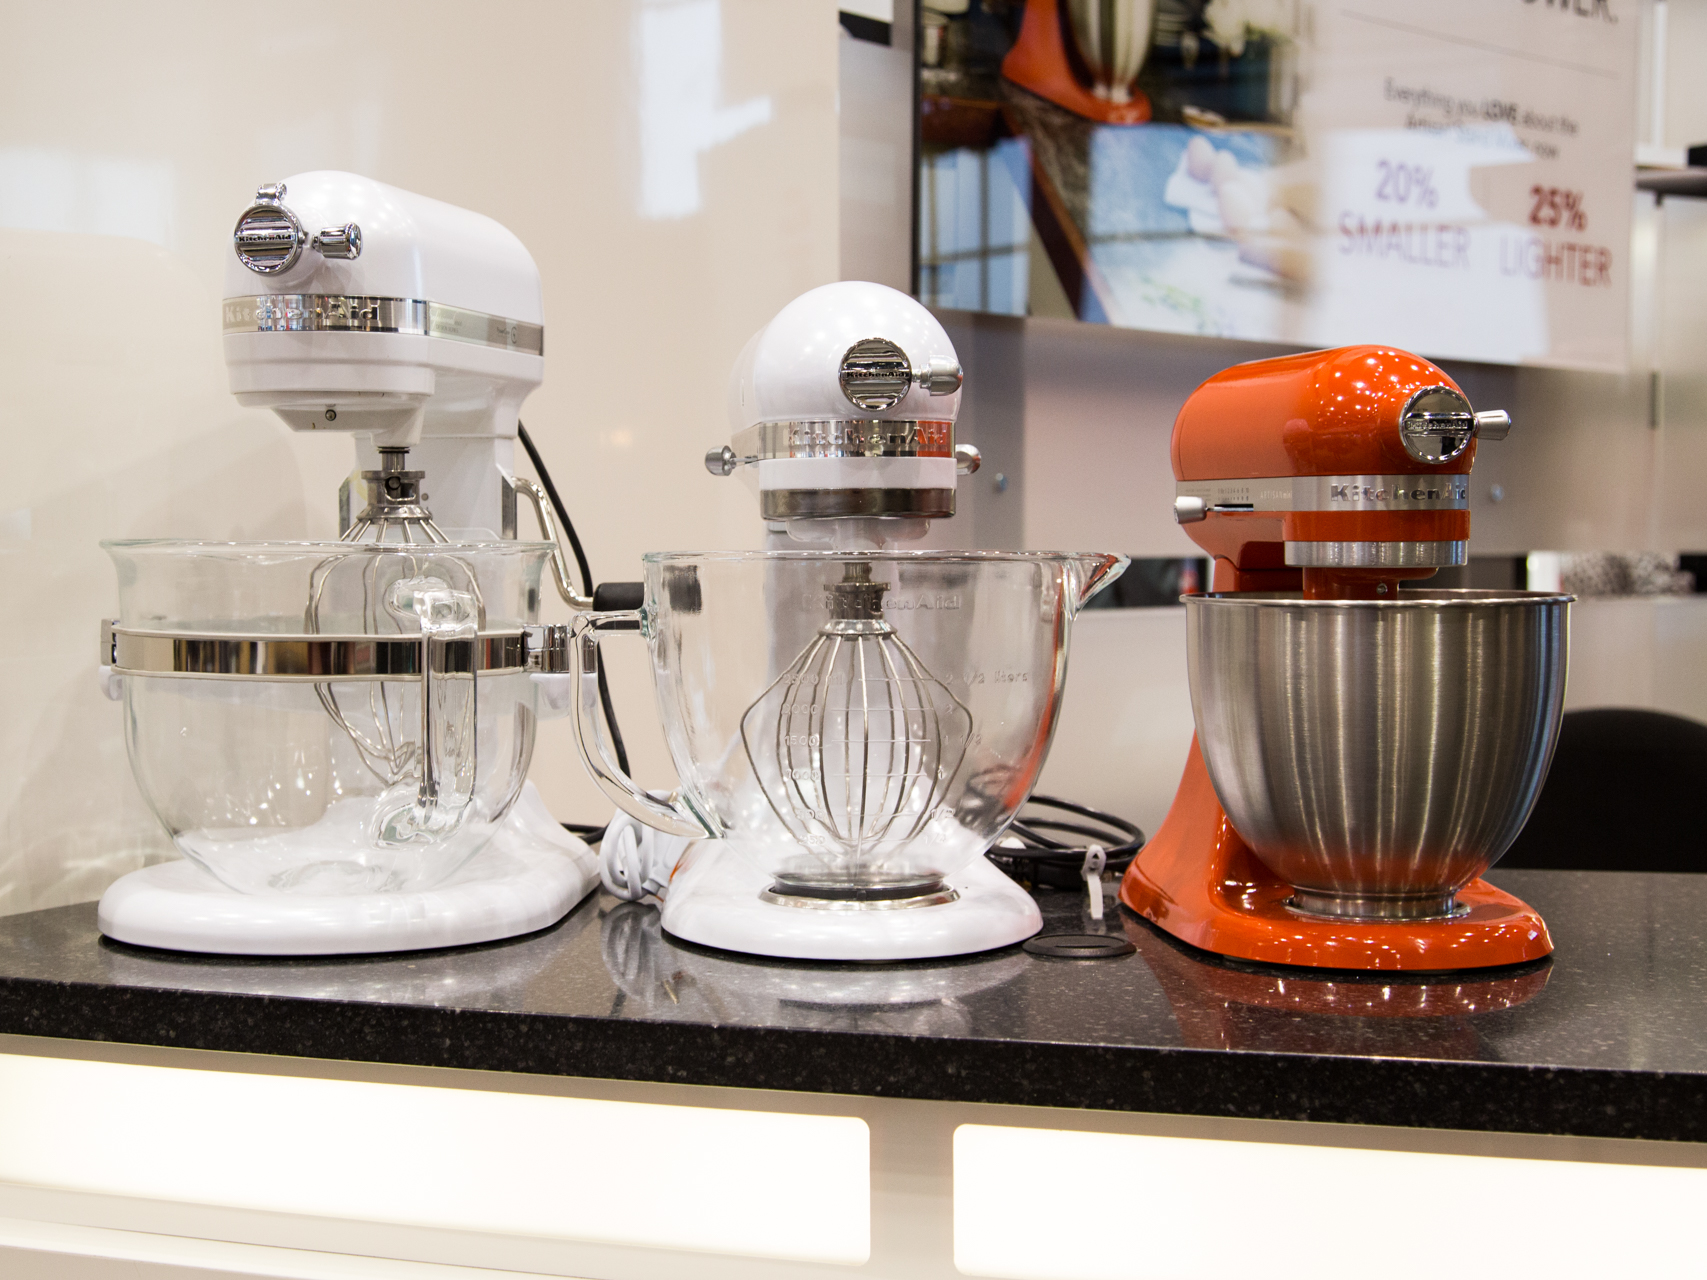 Kitchenaid S Iconic Mixers Are Now Smaller But Just As Costly Hands On Cnet